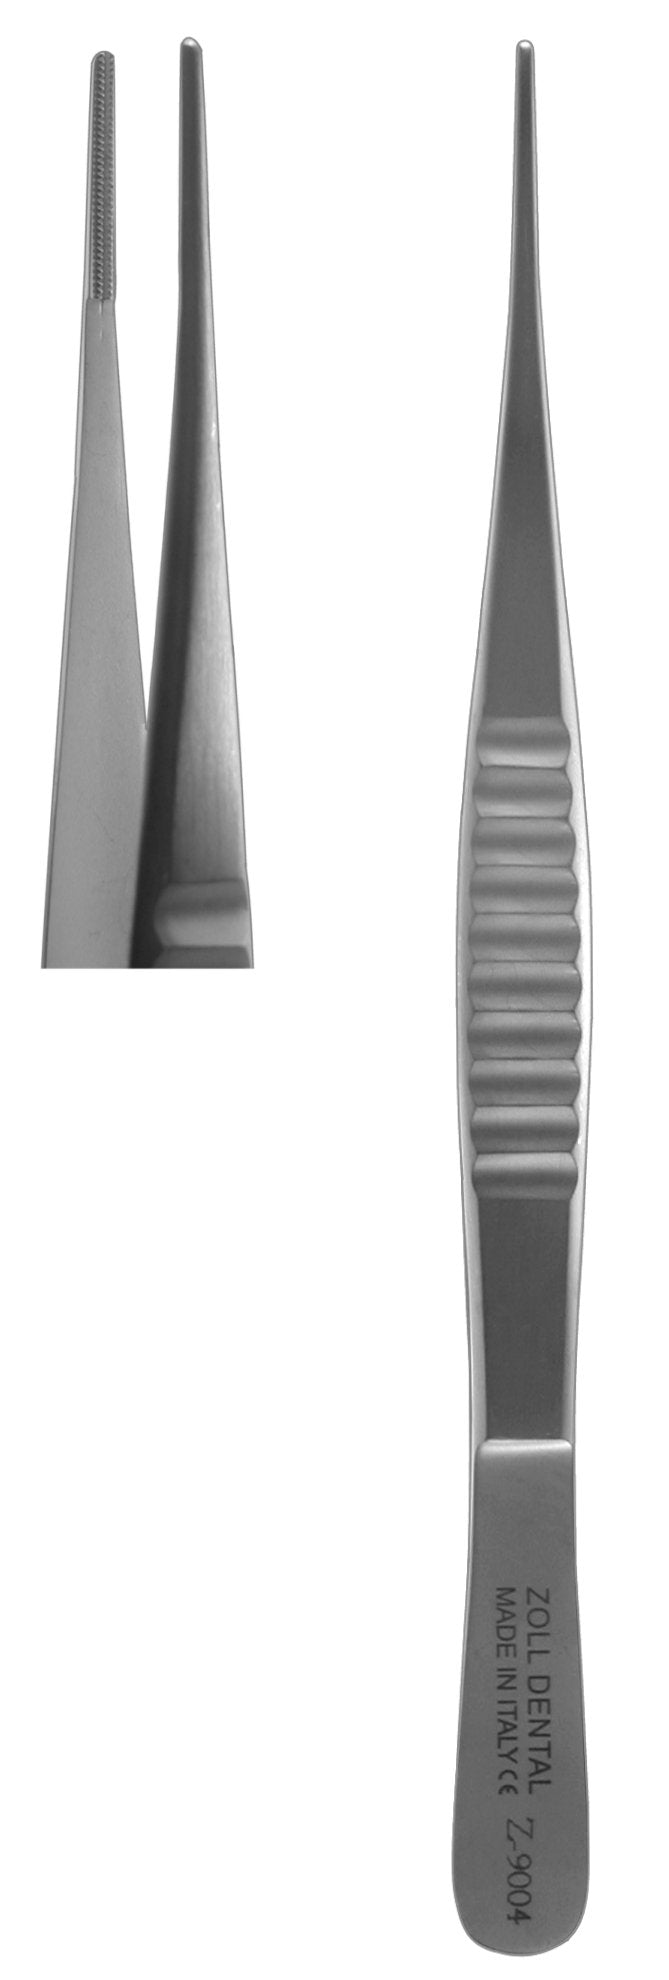 Tissue Forceps, DeBakey Straight A-Traumatic  (Z-9004)